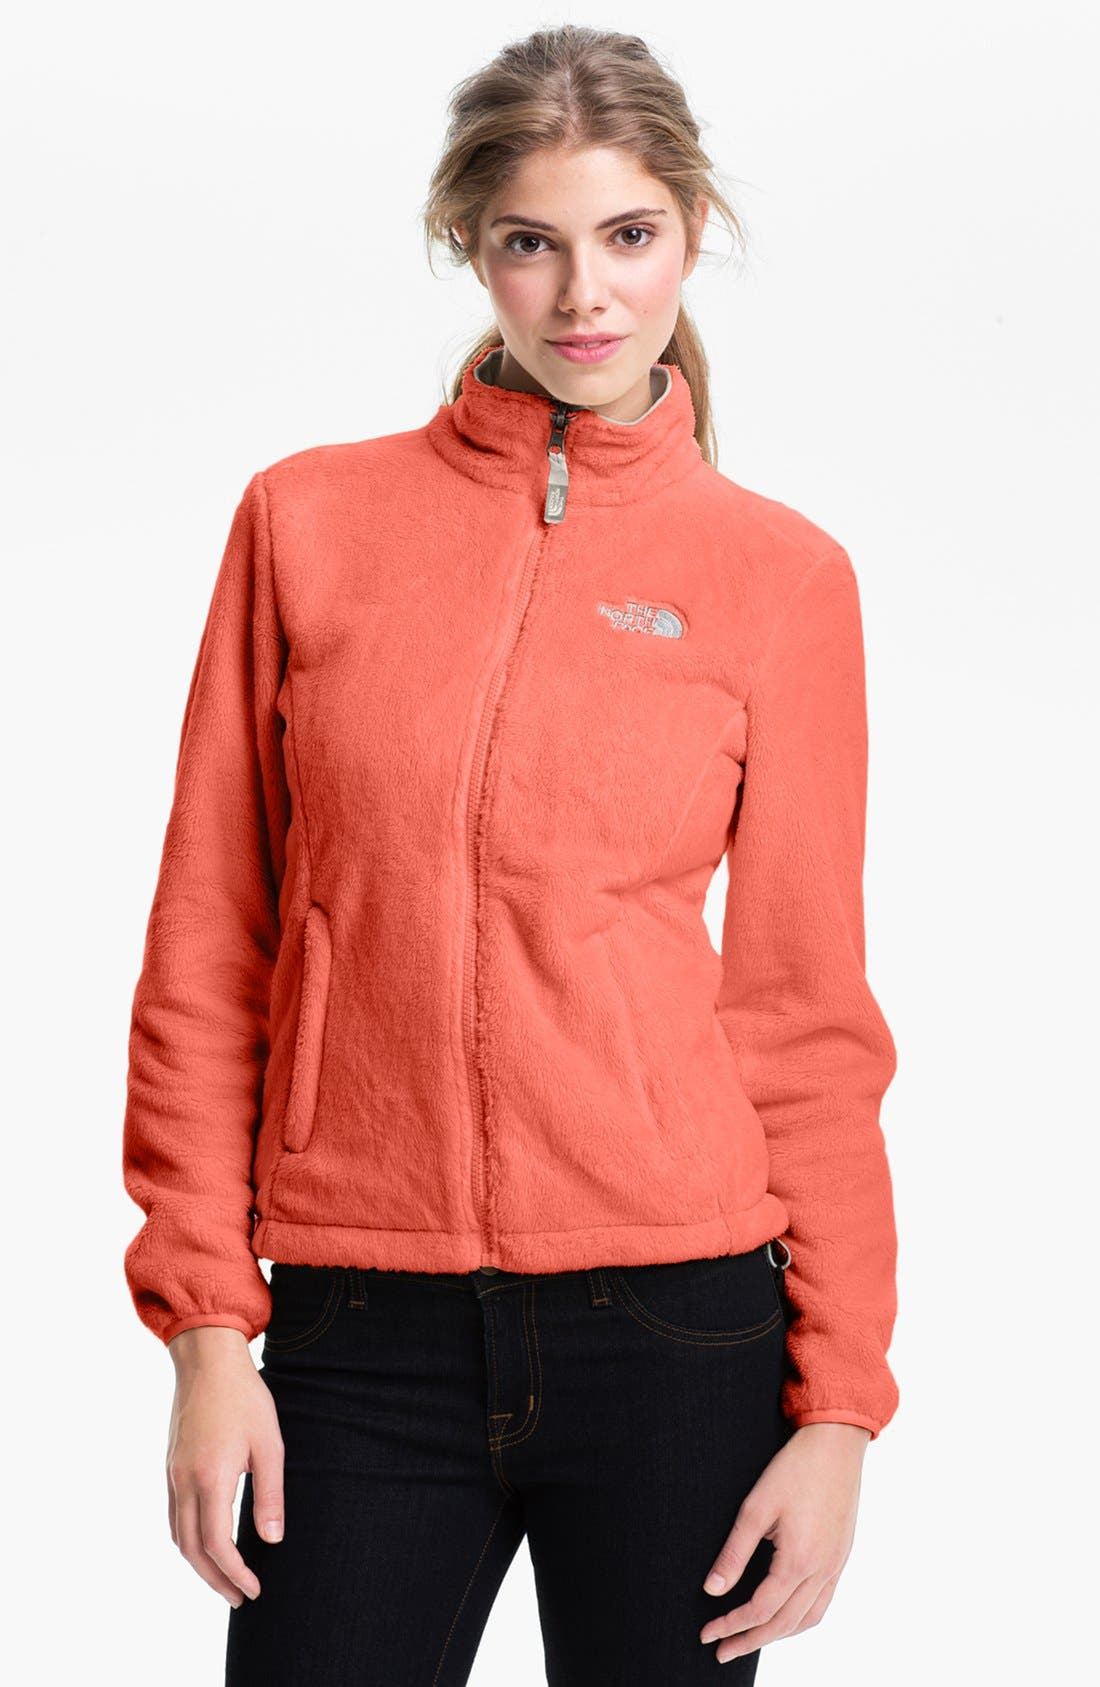 Main Image - The North Face 'Osito' Fleece Jacket